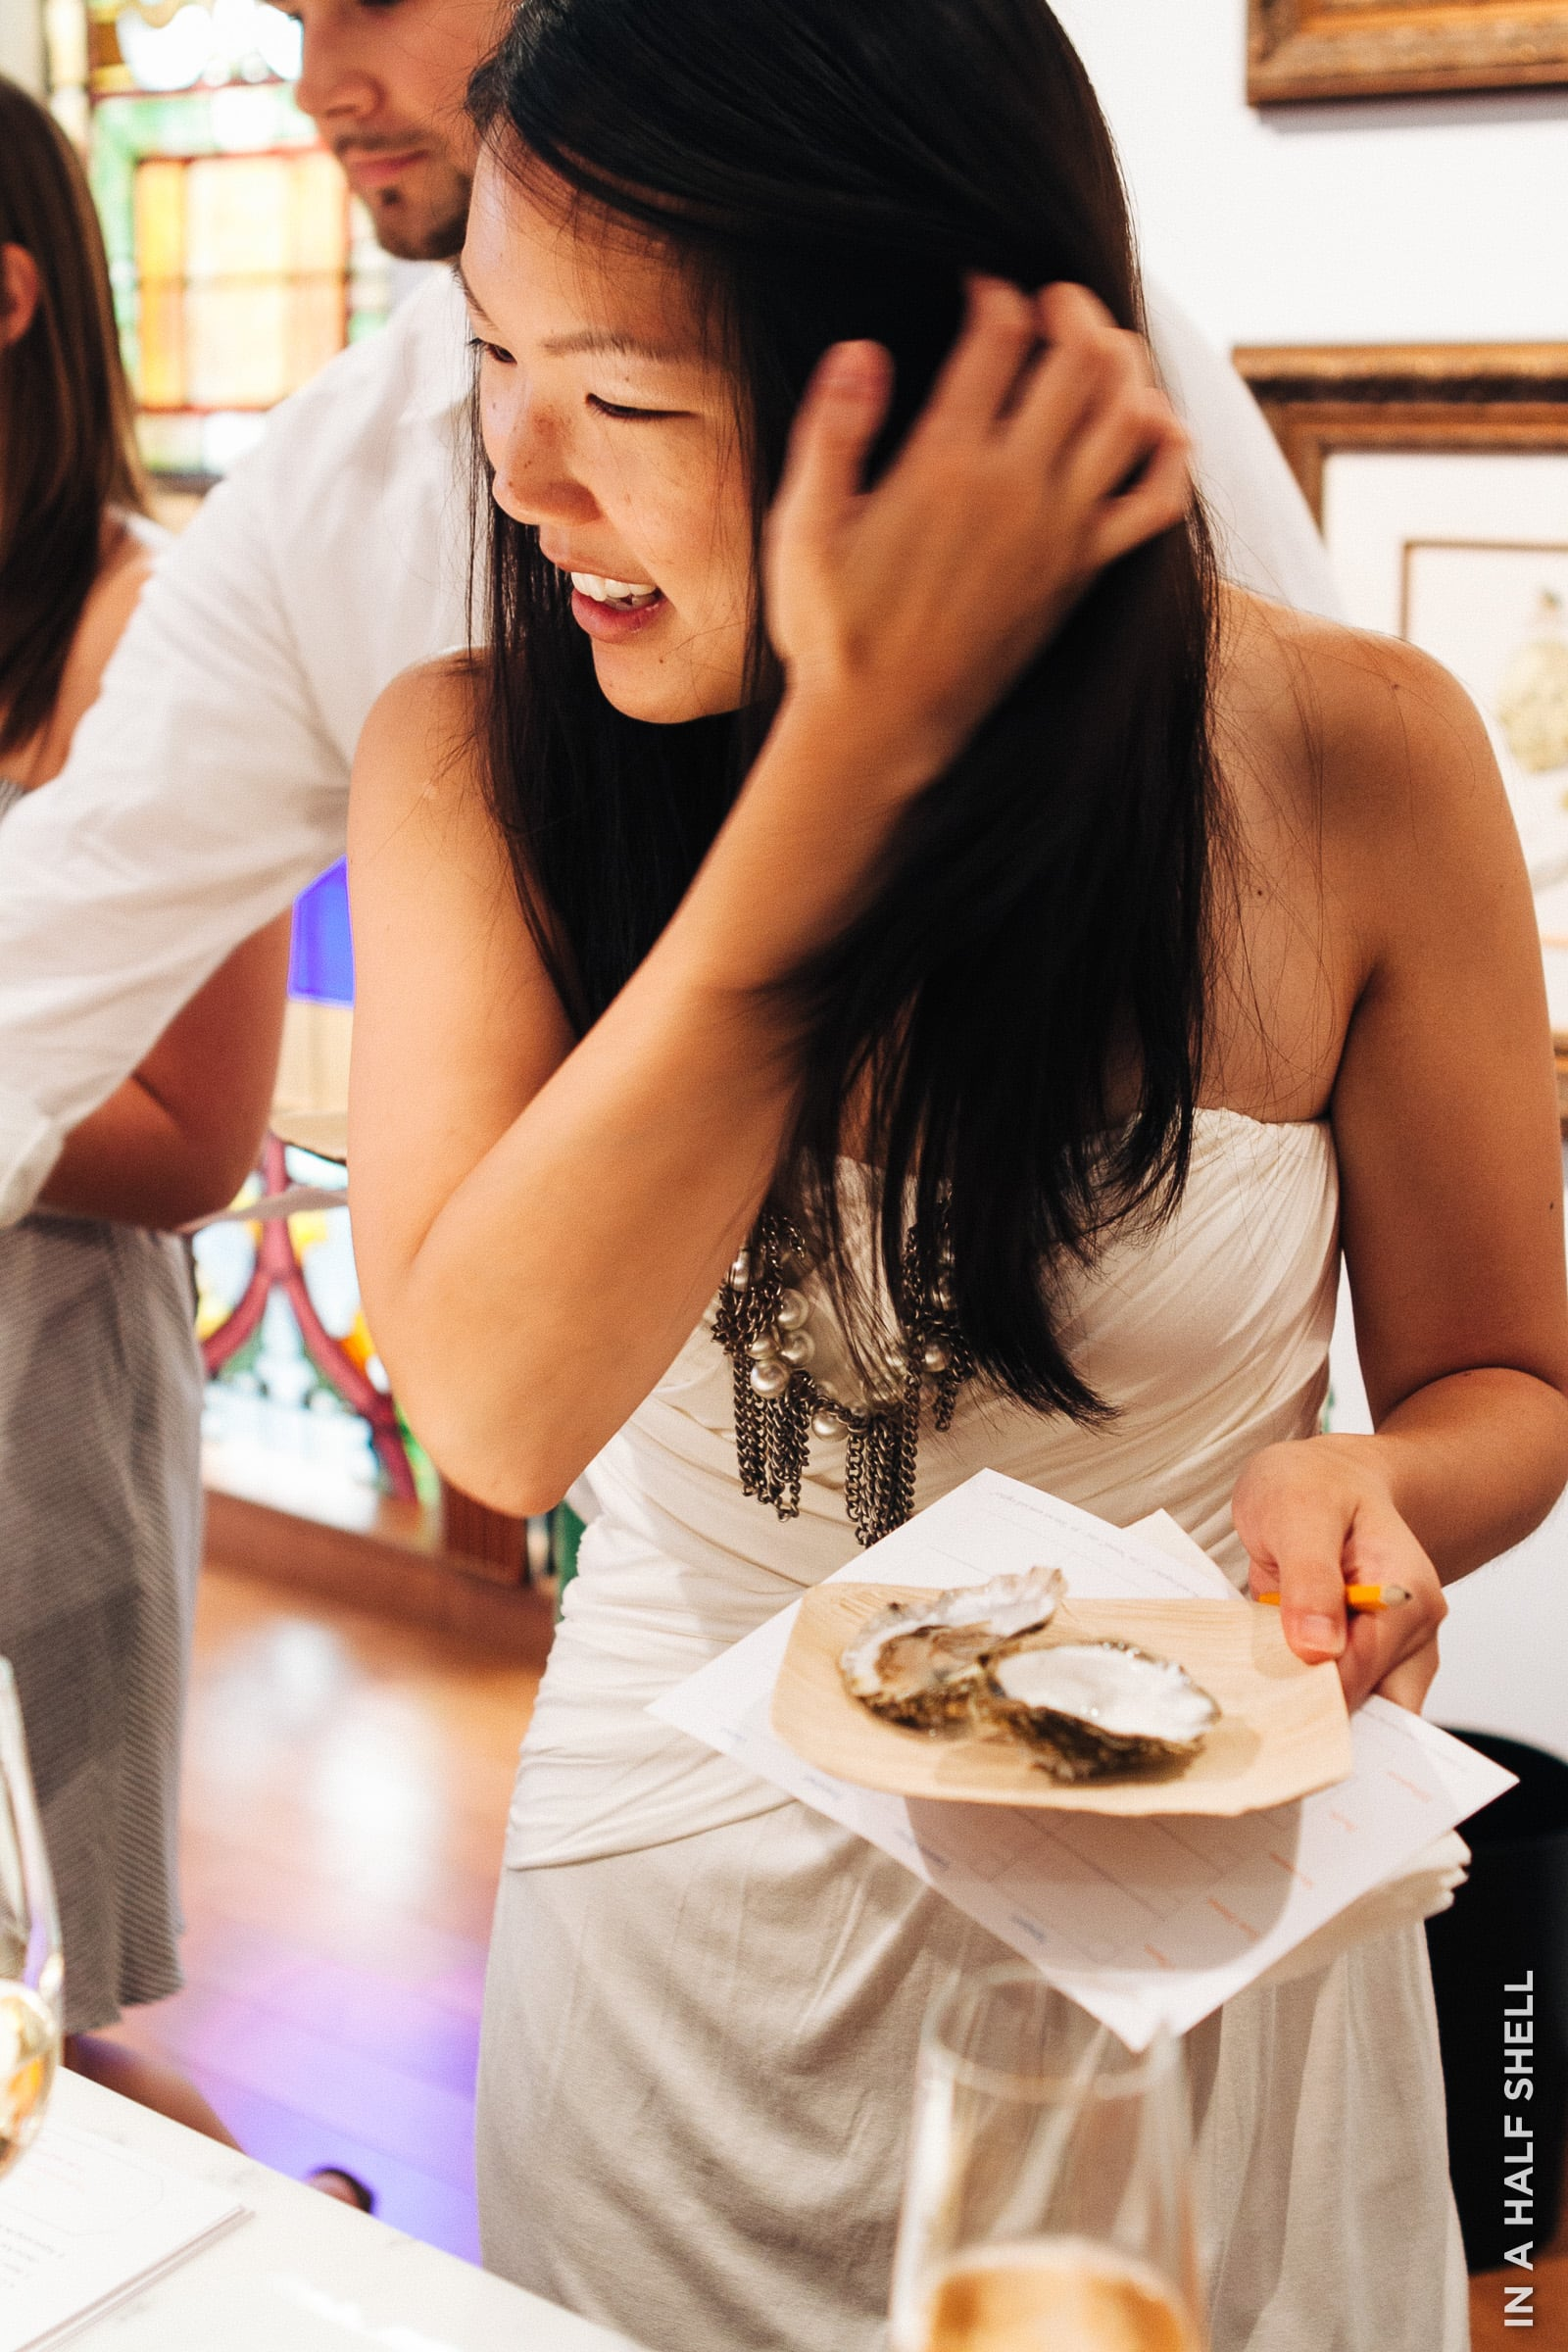 InAHalfShell-2011-OysterChampagneParty-3.jpg